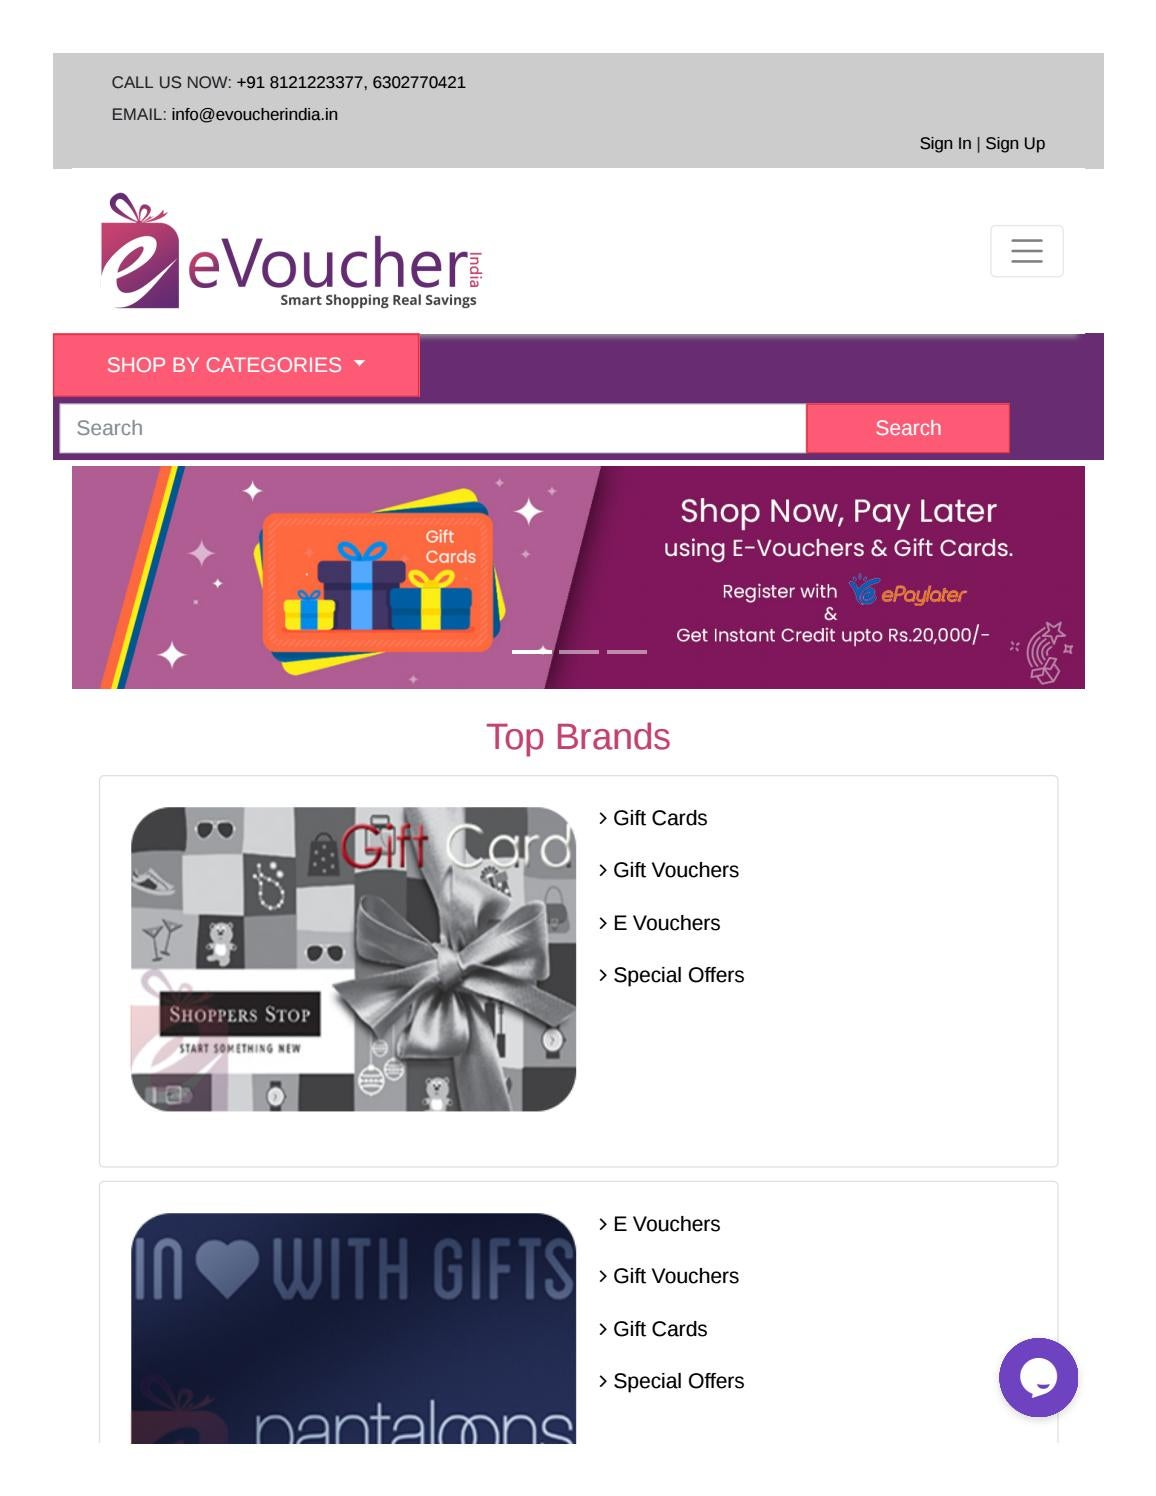 Email Gift Vouchers Buy Gift Vouchers Online Gift Cards Online E Gift Vouchers In India Evoucher India